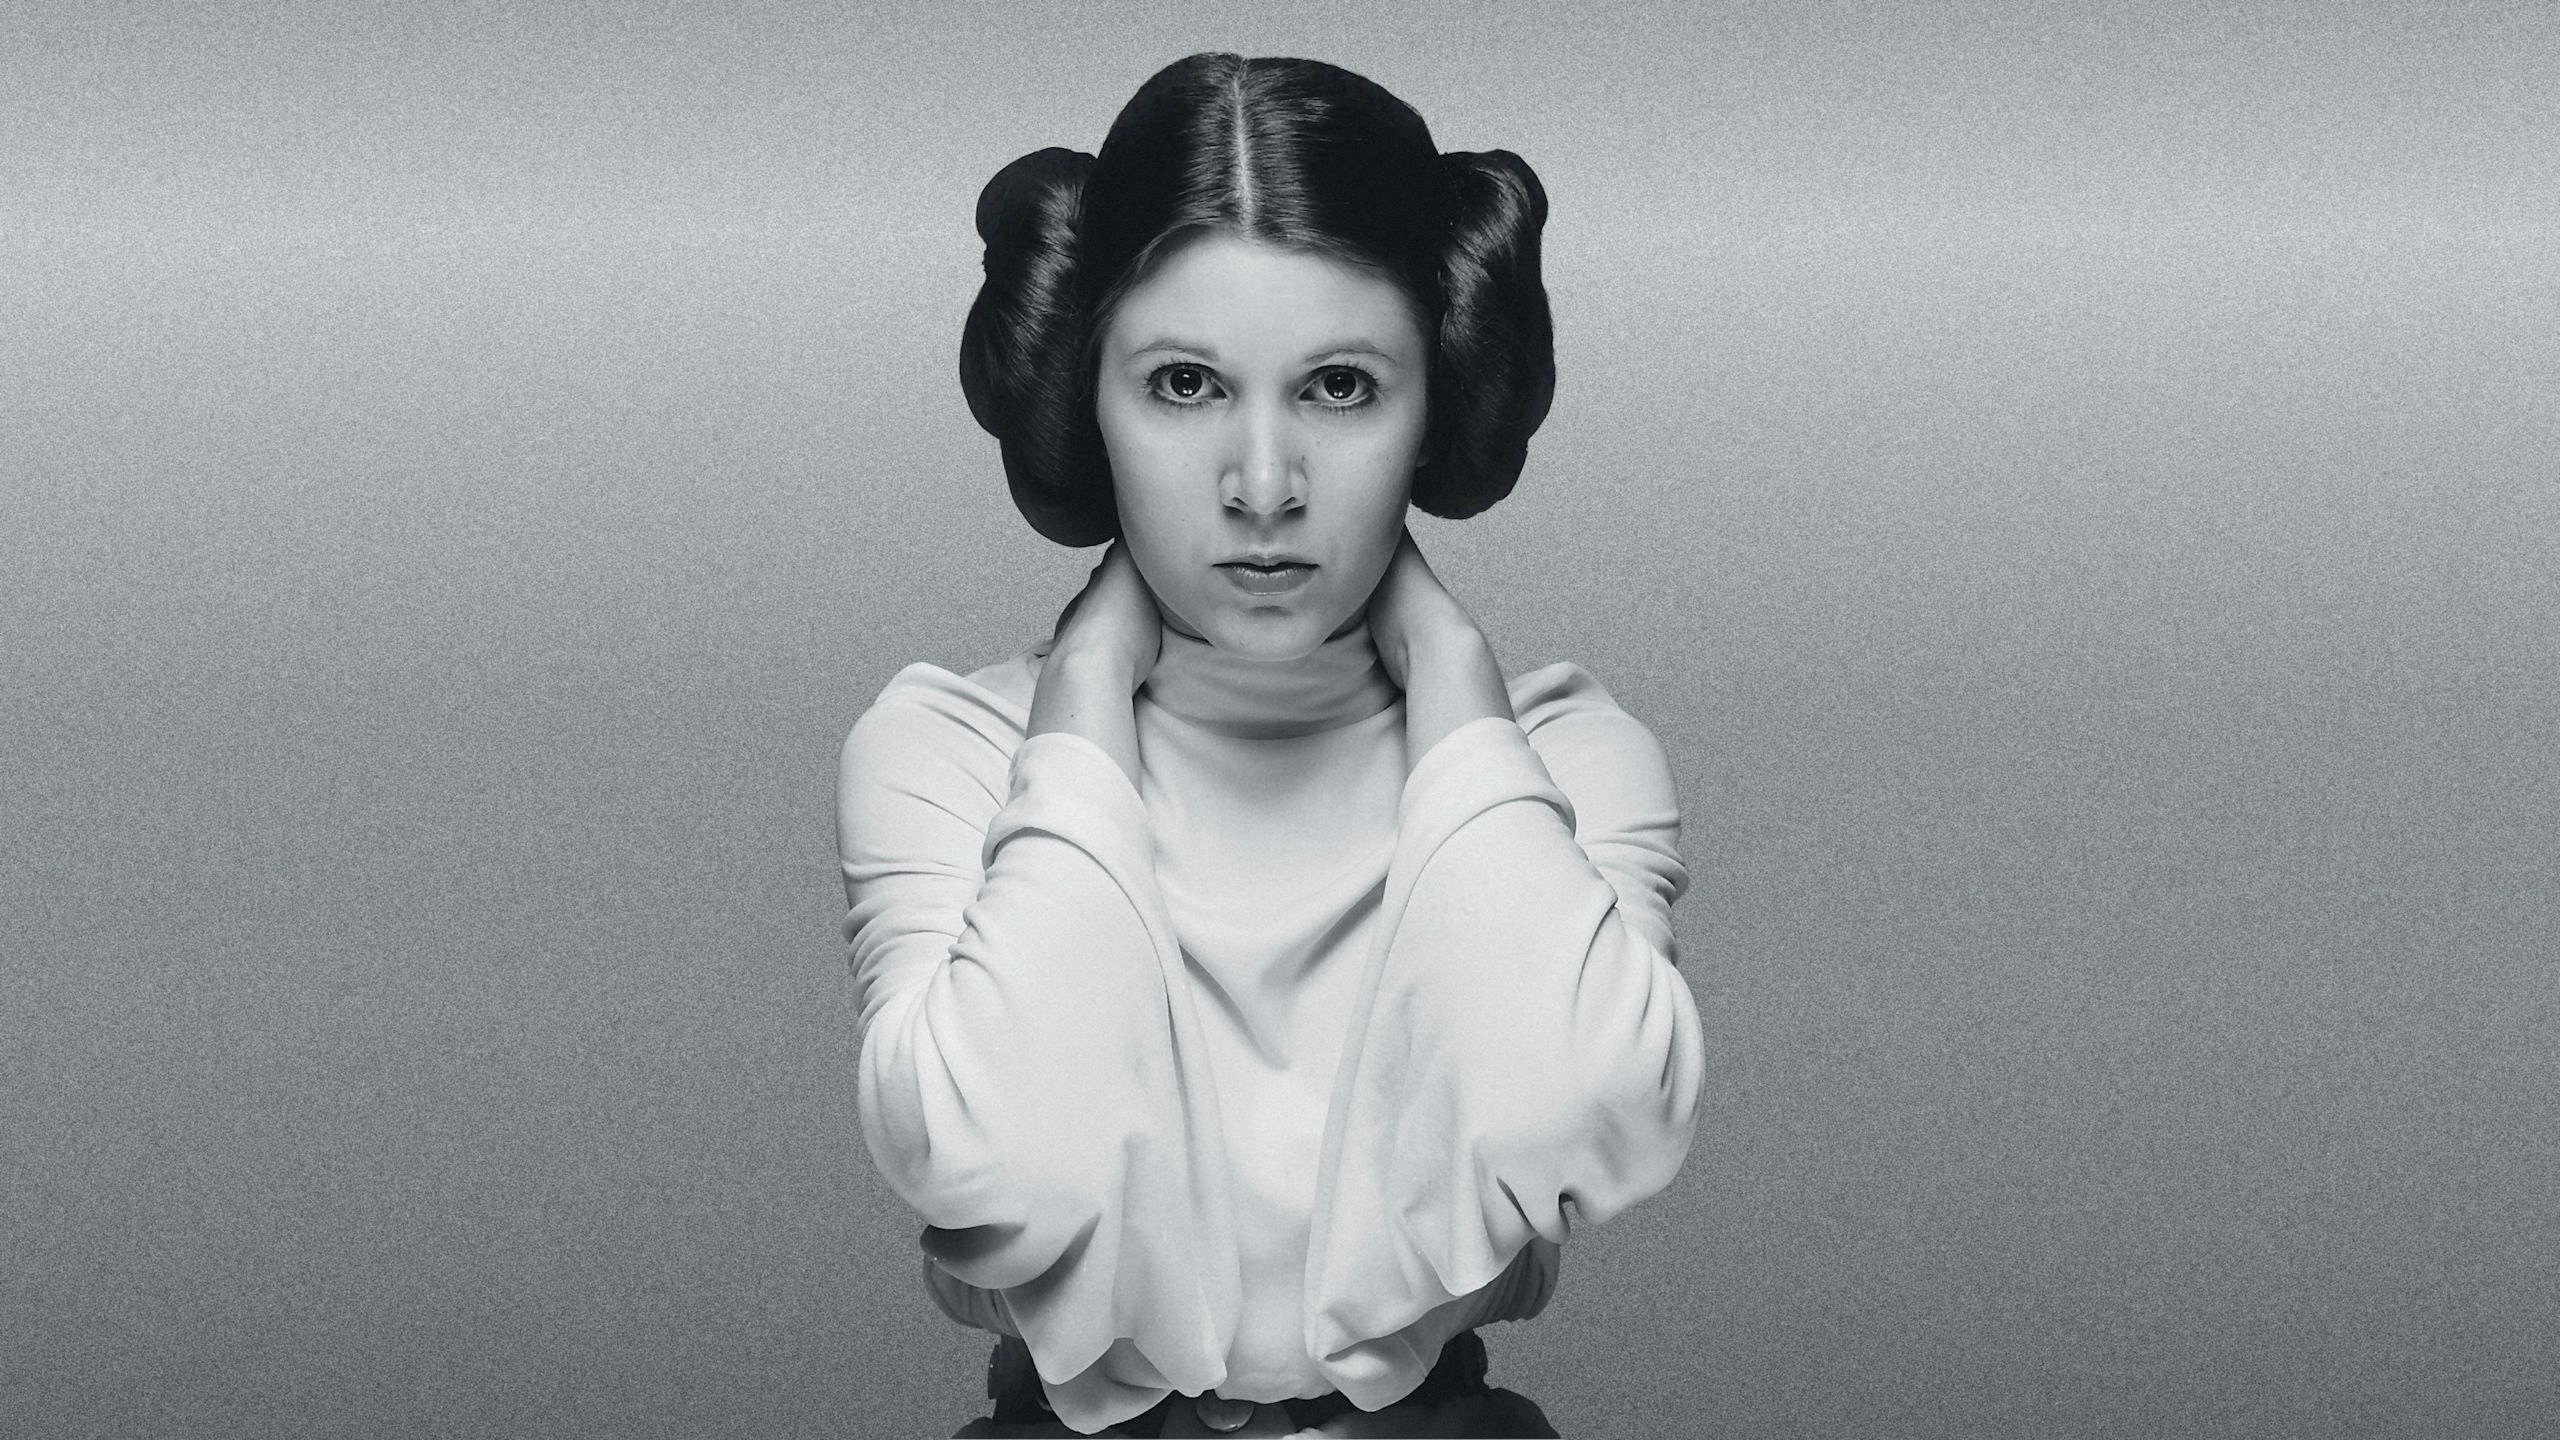 Carrie Fisher Wallpapers Top Free Carrie Fisher Backgrounds Wallpaperaccess